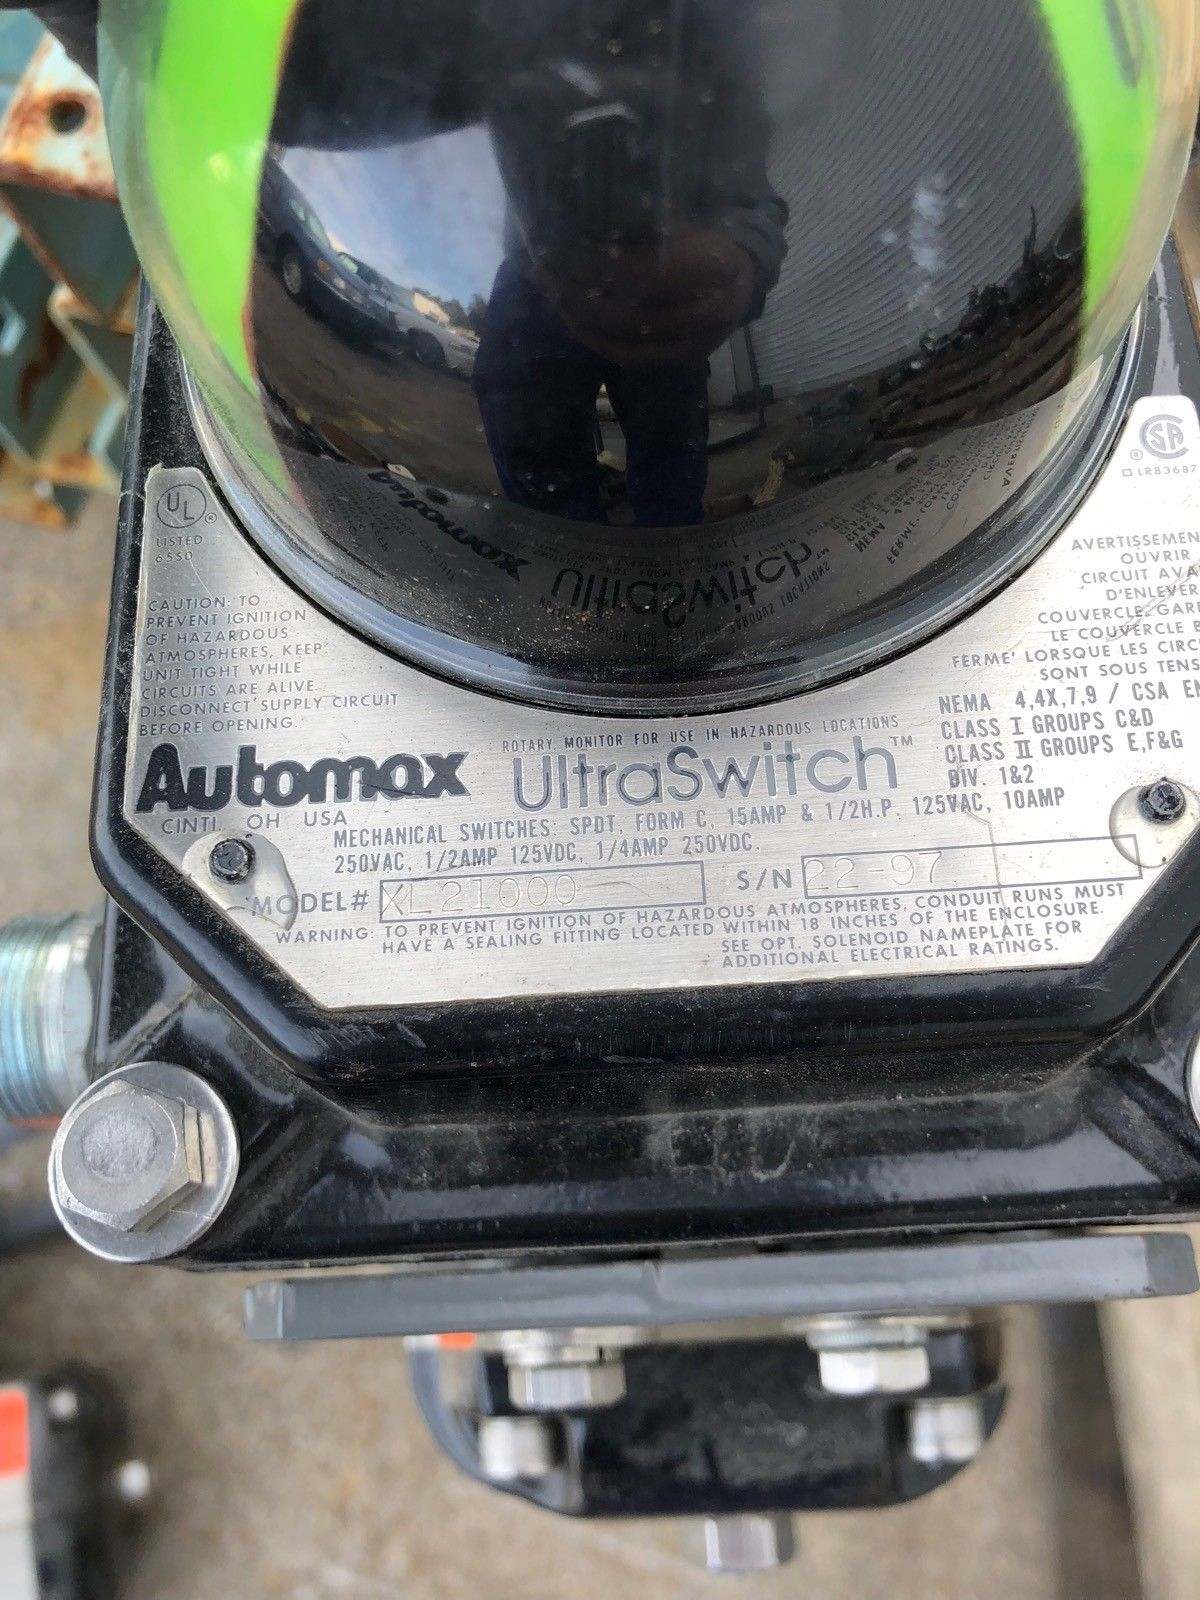 USED AUTOMAX ACTUATOR SNA100S10 4� GATE VALVE AUTOMAX ULTRASWITCH, FAST SHIP! 3